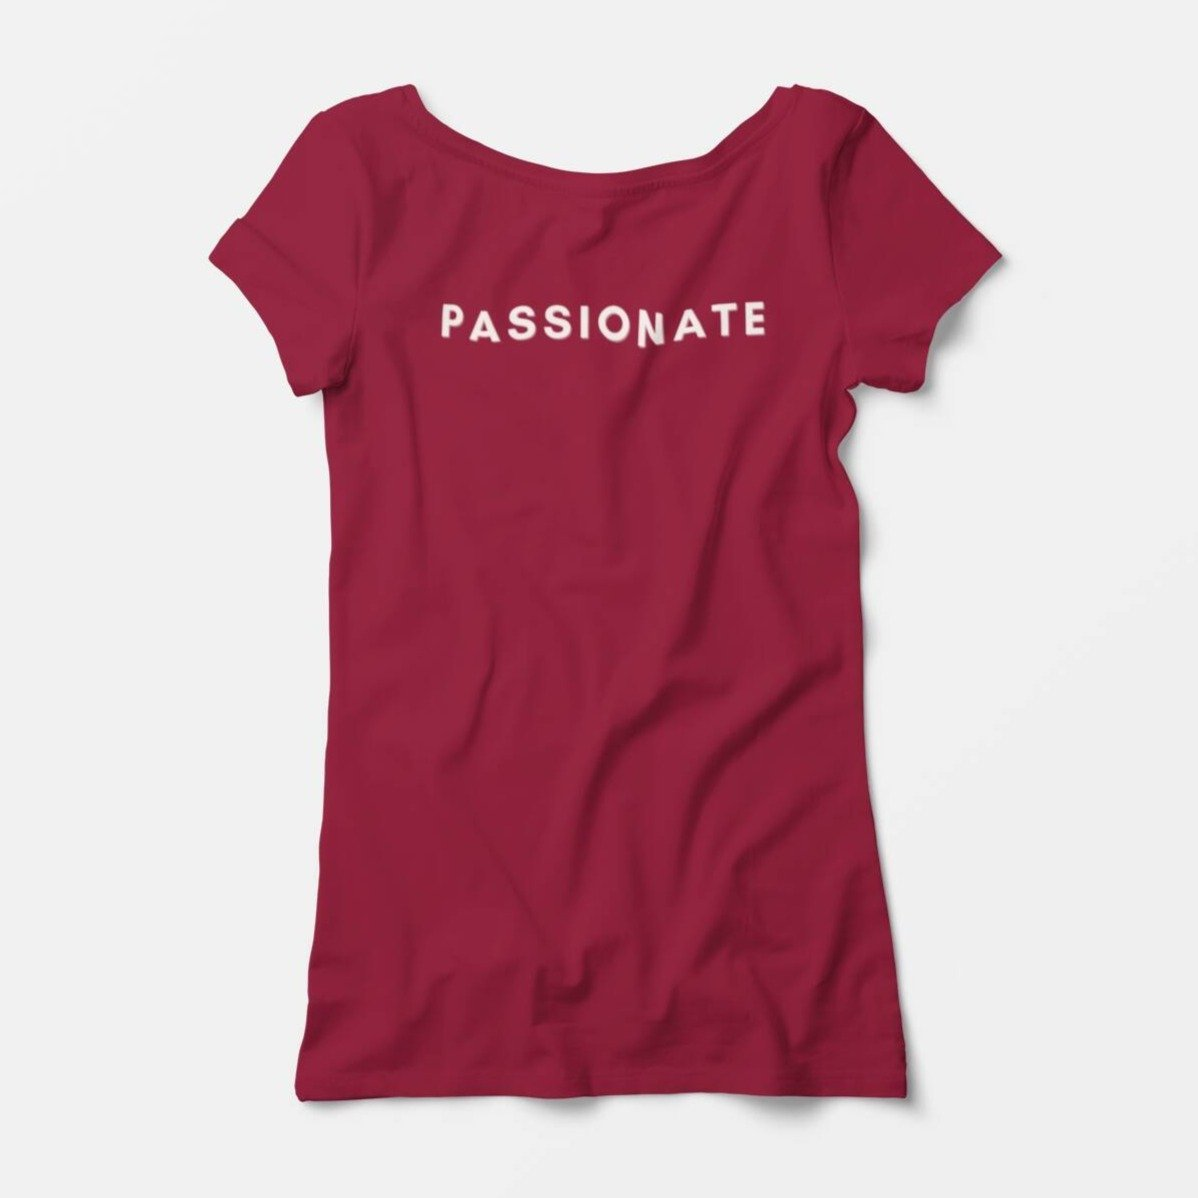 Passionate Mood Top